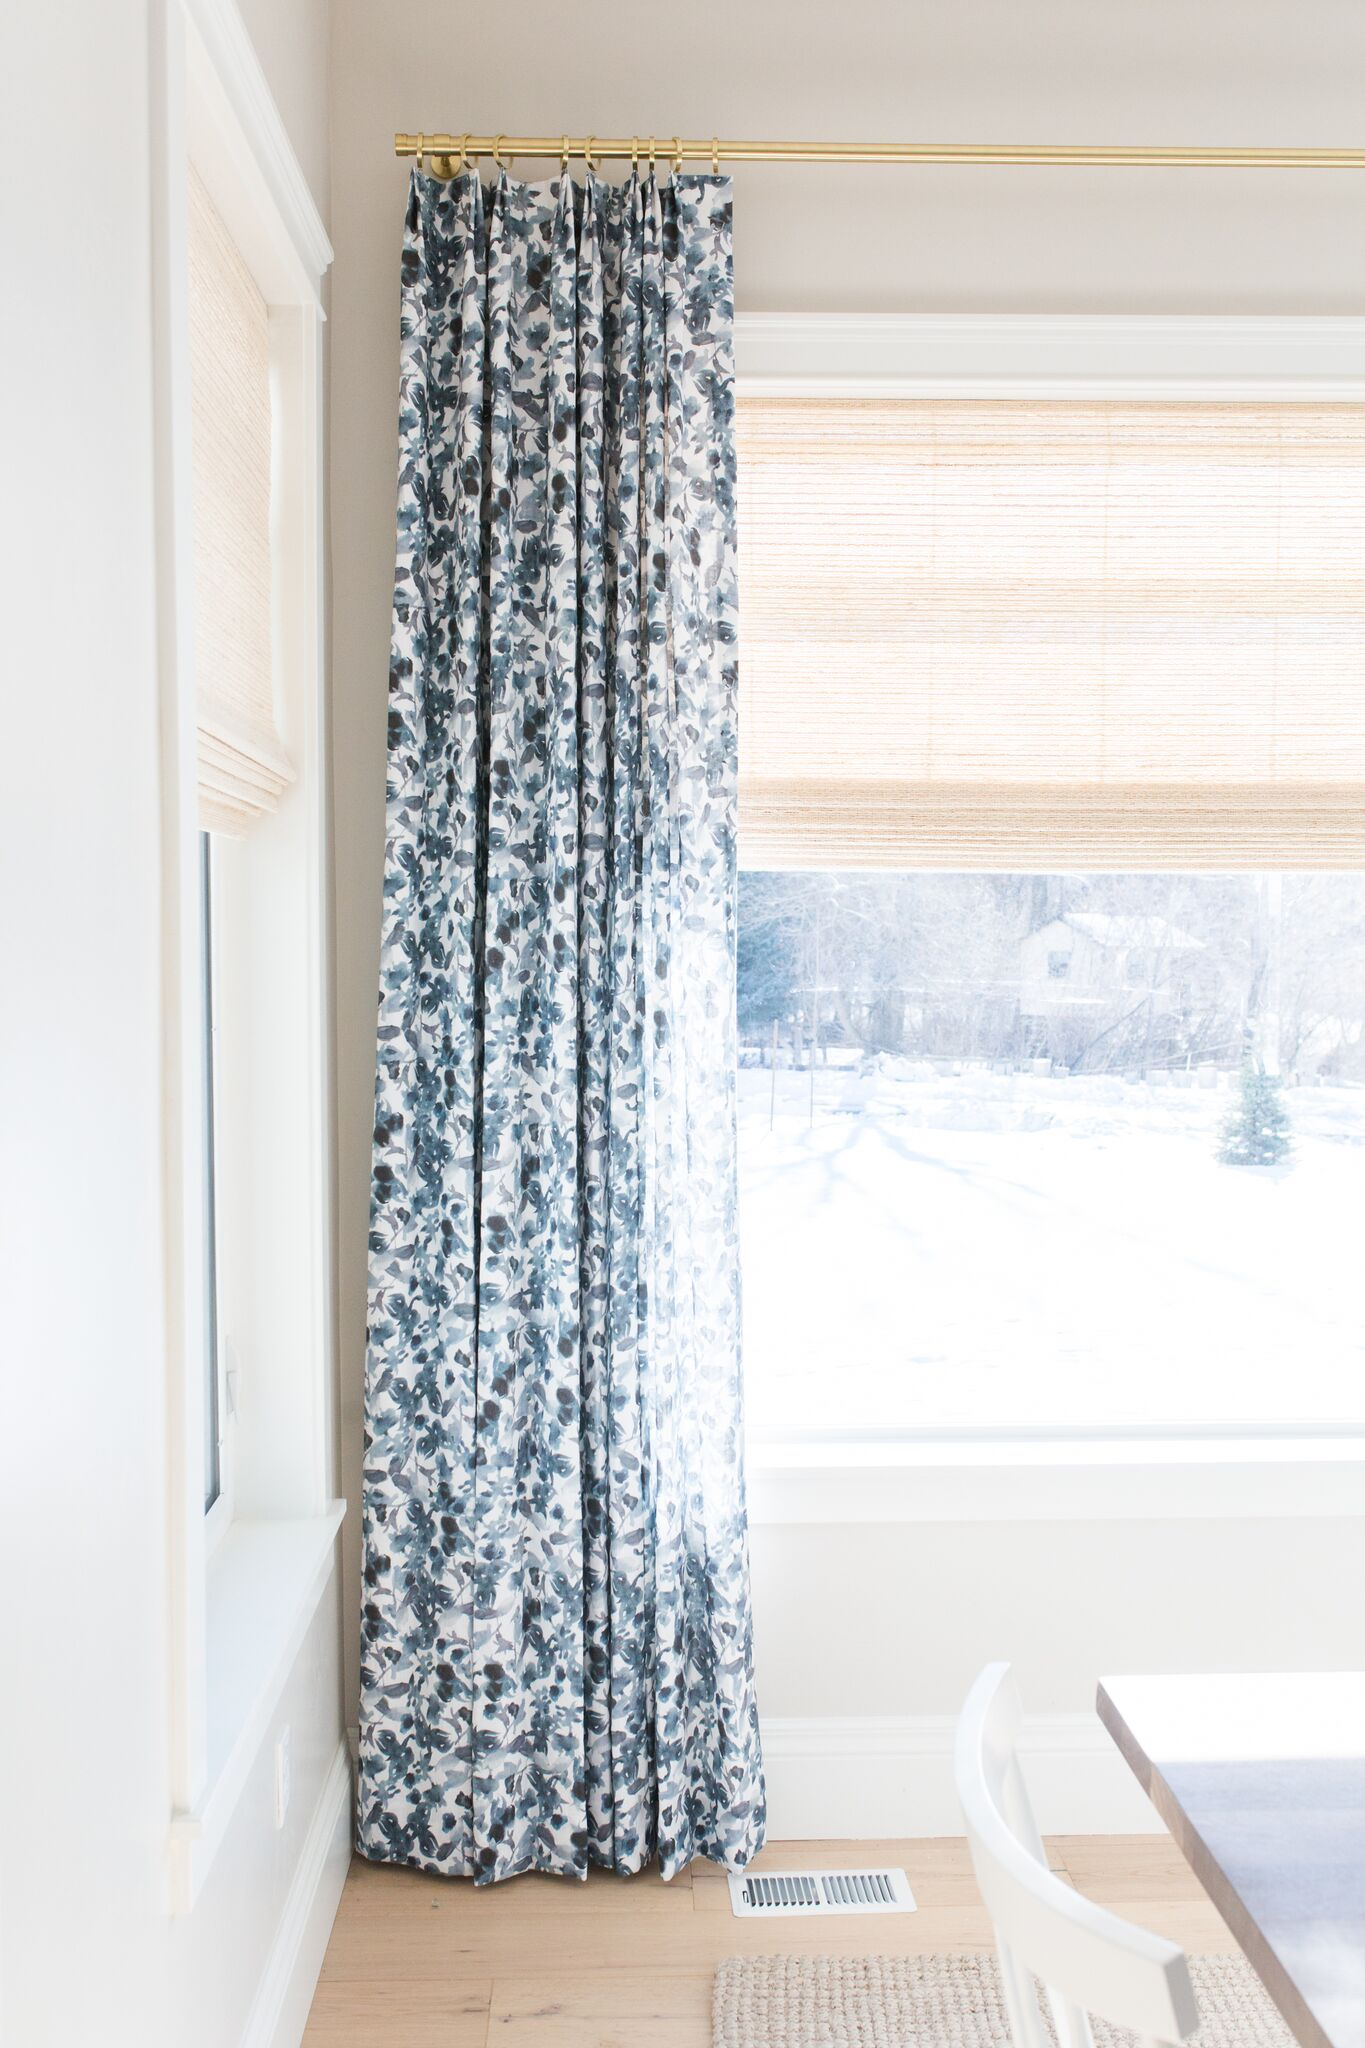 Pattern details on blue and white curtains